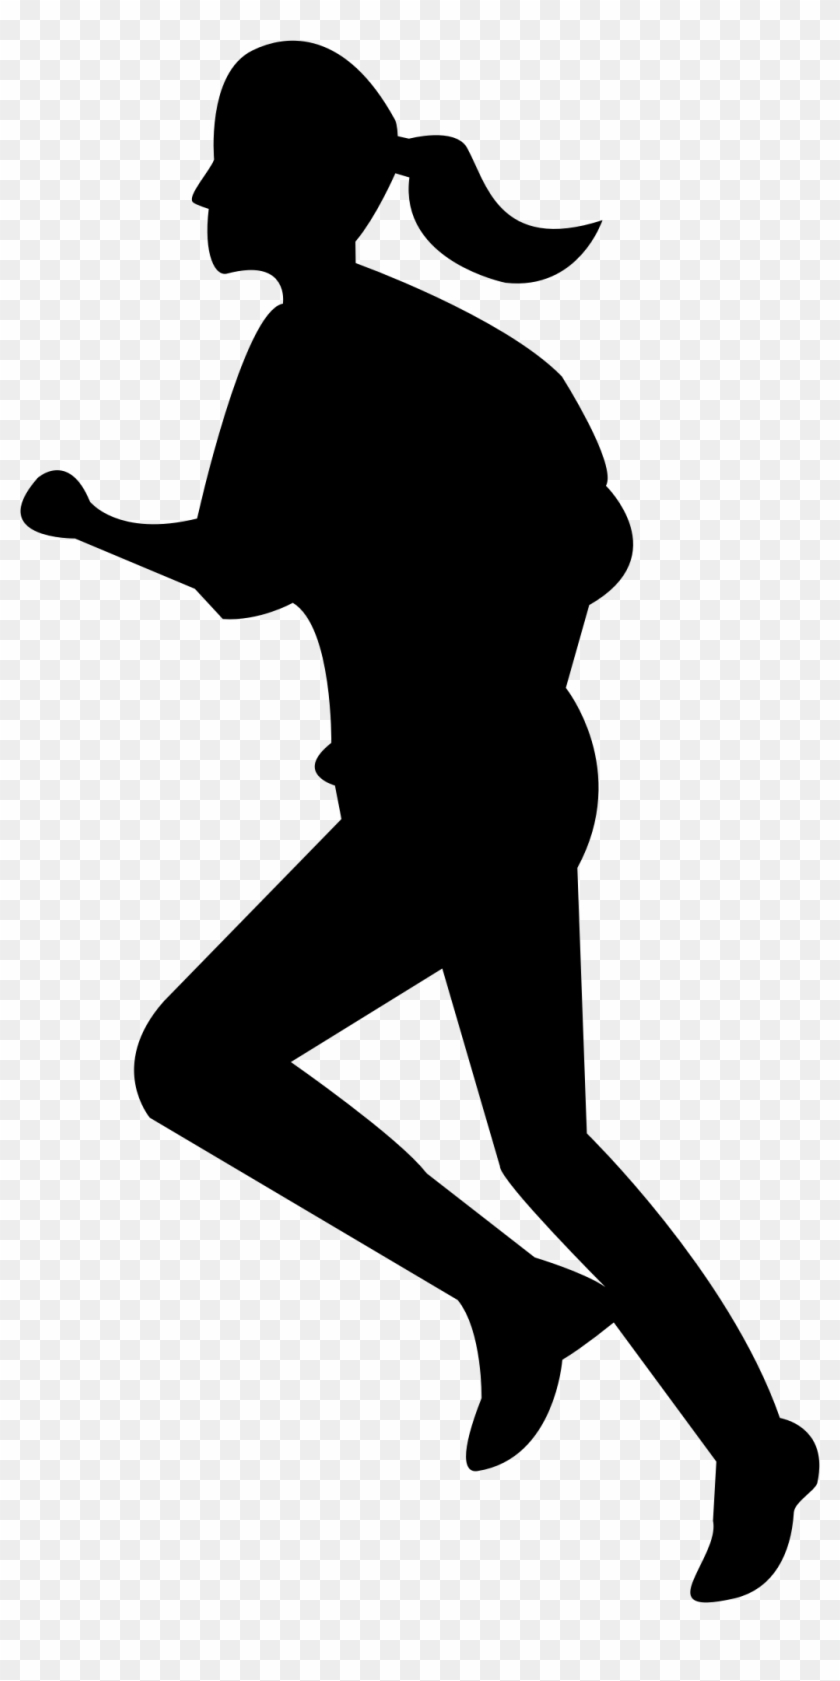 "Girls Silhouette Person Running Clipart €"" Rise - Girl Running Clipart Transparent #23704"